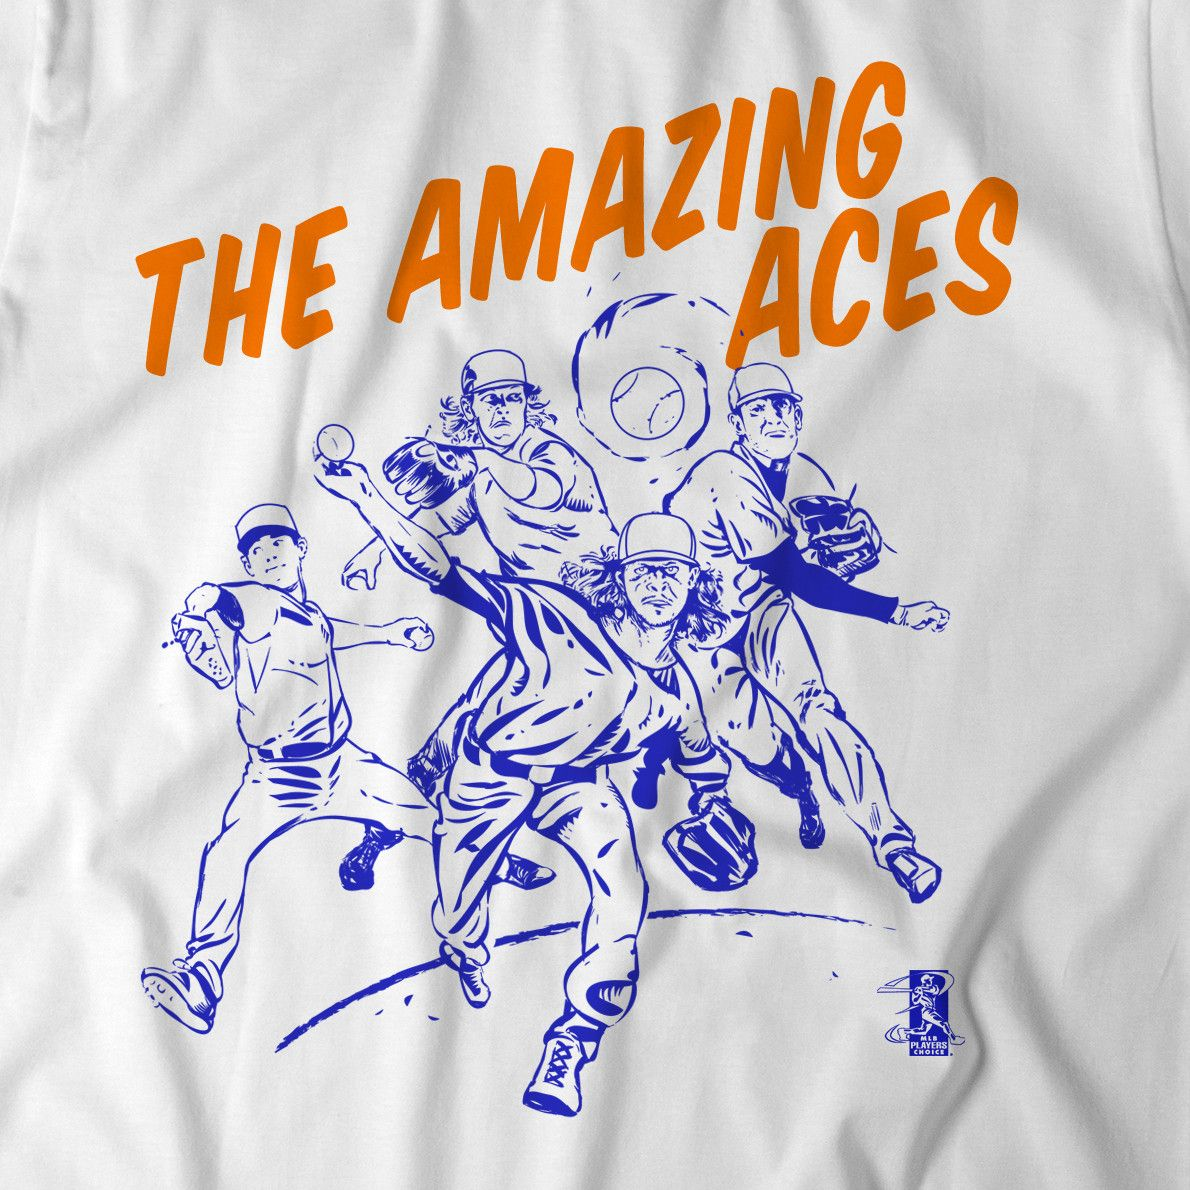 OUT OF RETIREMENT BY POPULAR DEMAND! Jacob deGrom, Noah Syndergaard, Matt Harvey, Steven Matz: these guys are superheroes. They are the Amazing Aces. Commemorate the most feared rotation in the league